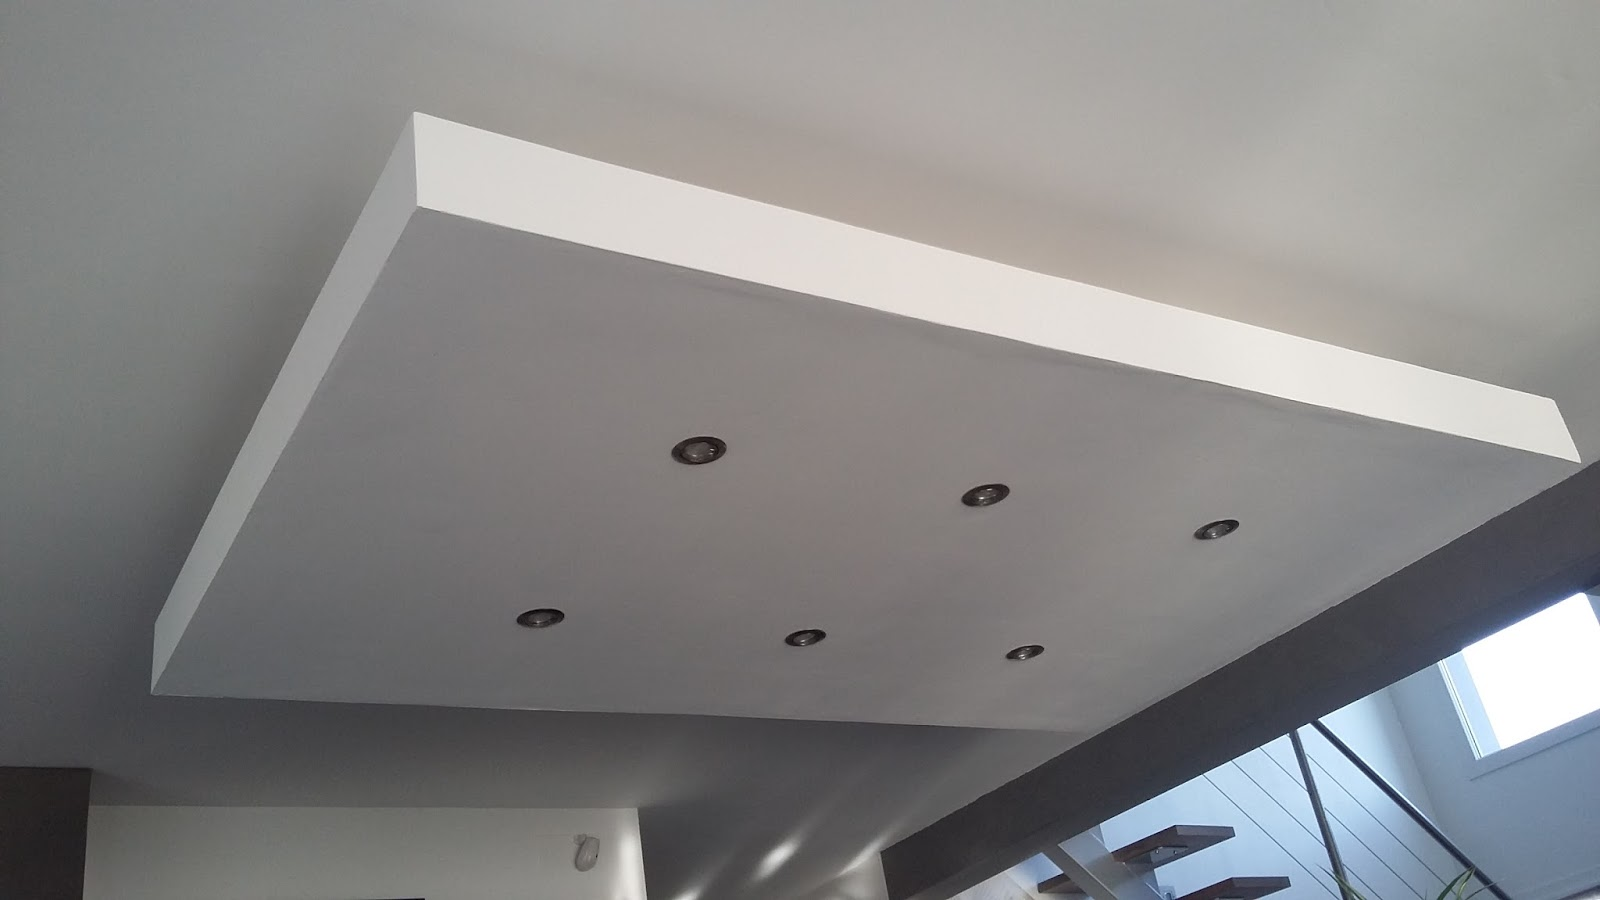 Déroché Plafond Descendu Suspendu Ilot Central Decaist Design Spots Caisson Placo Platre